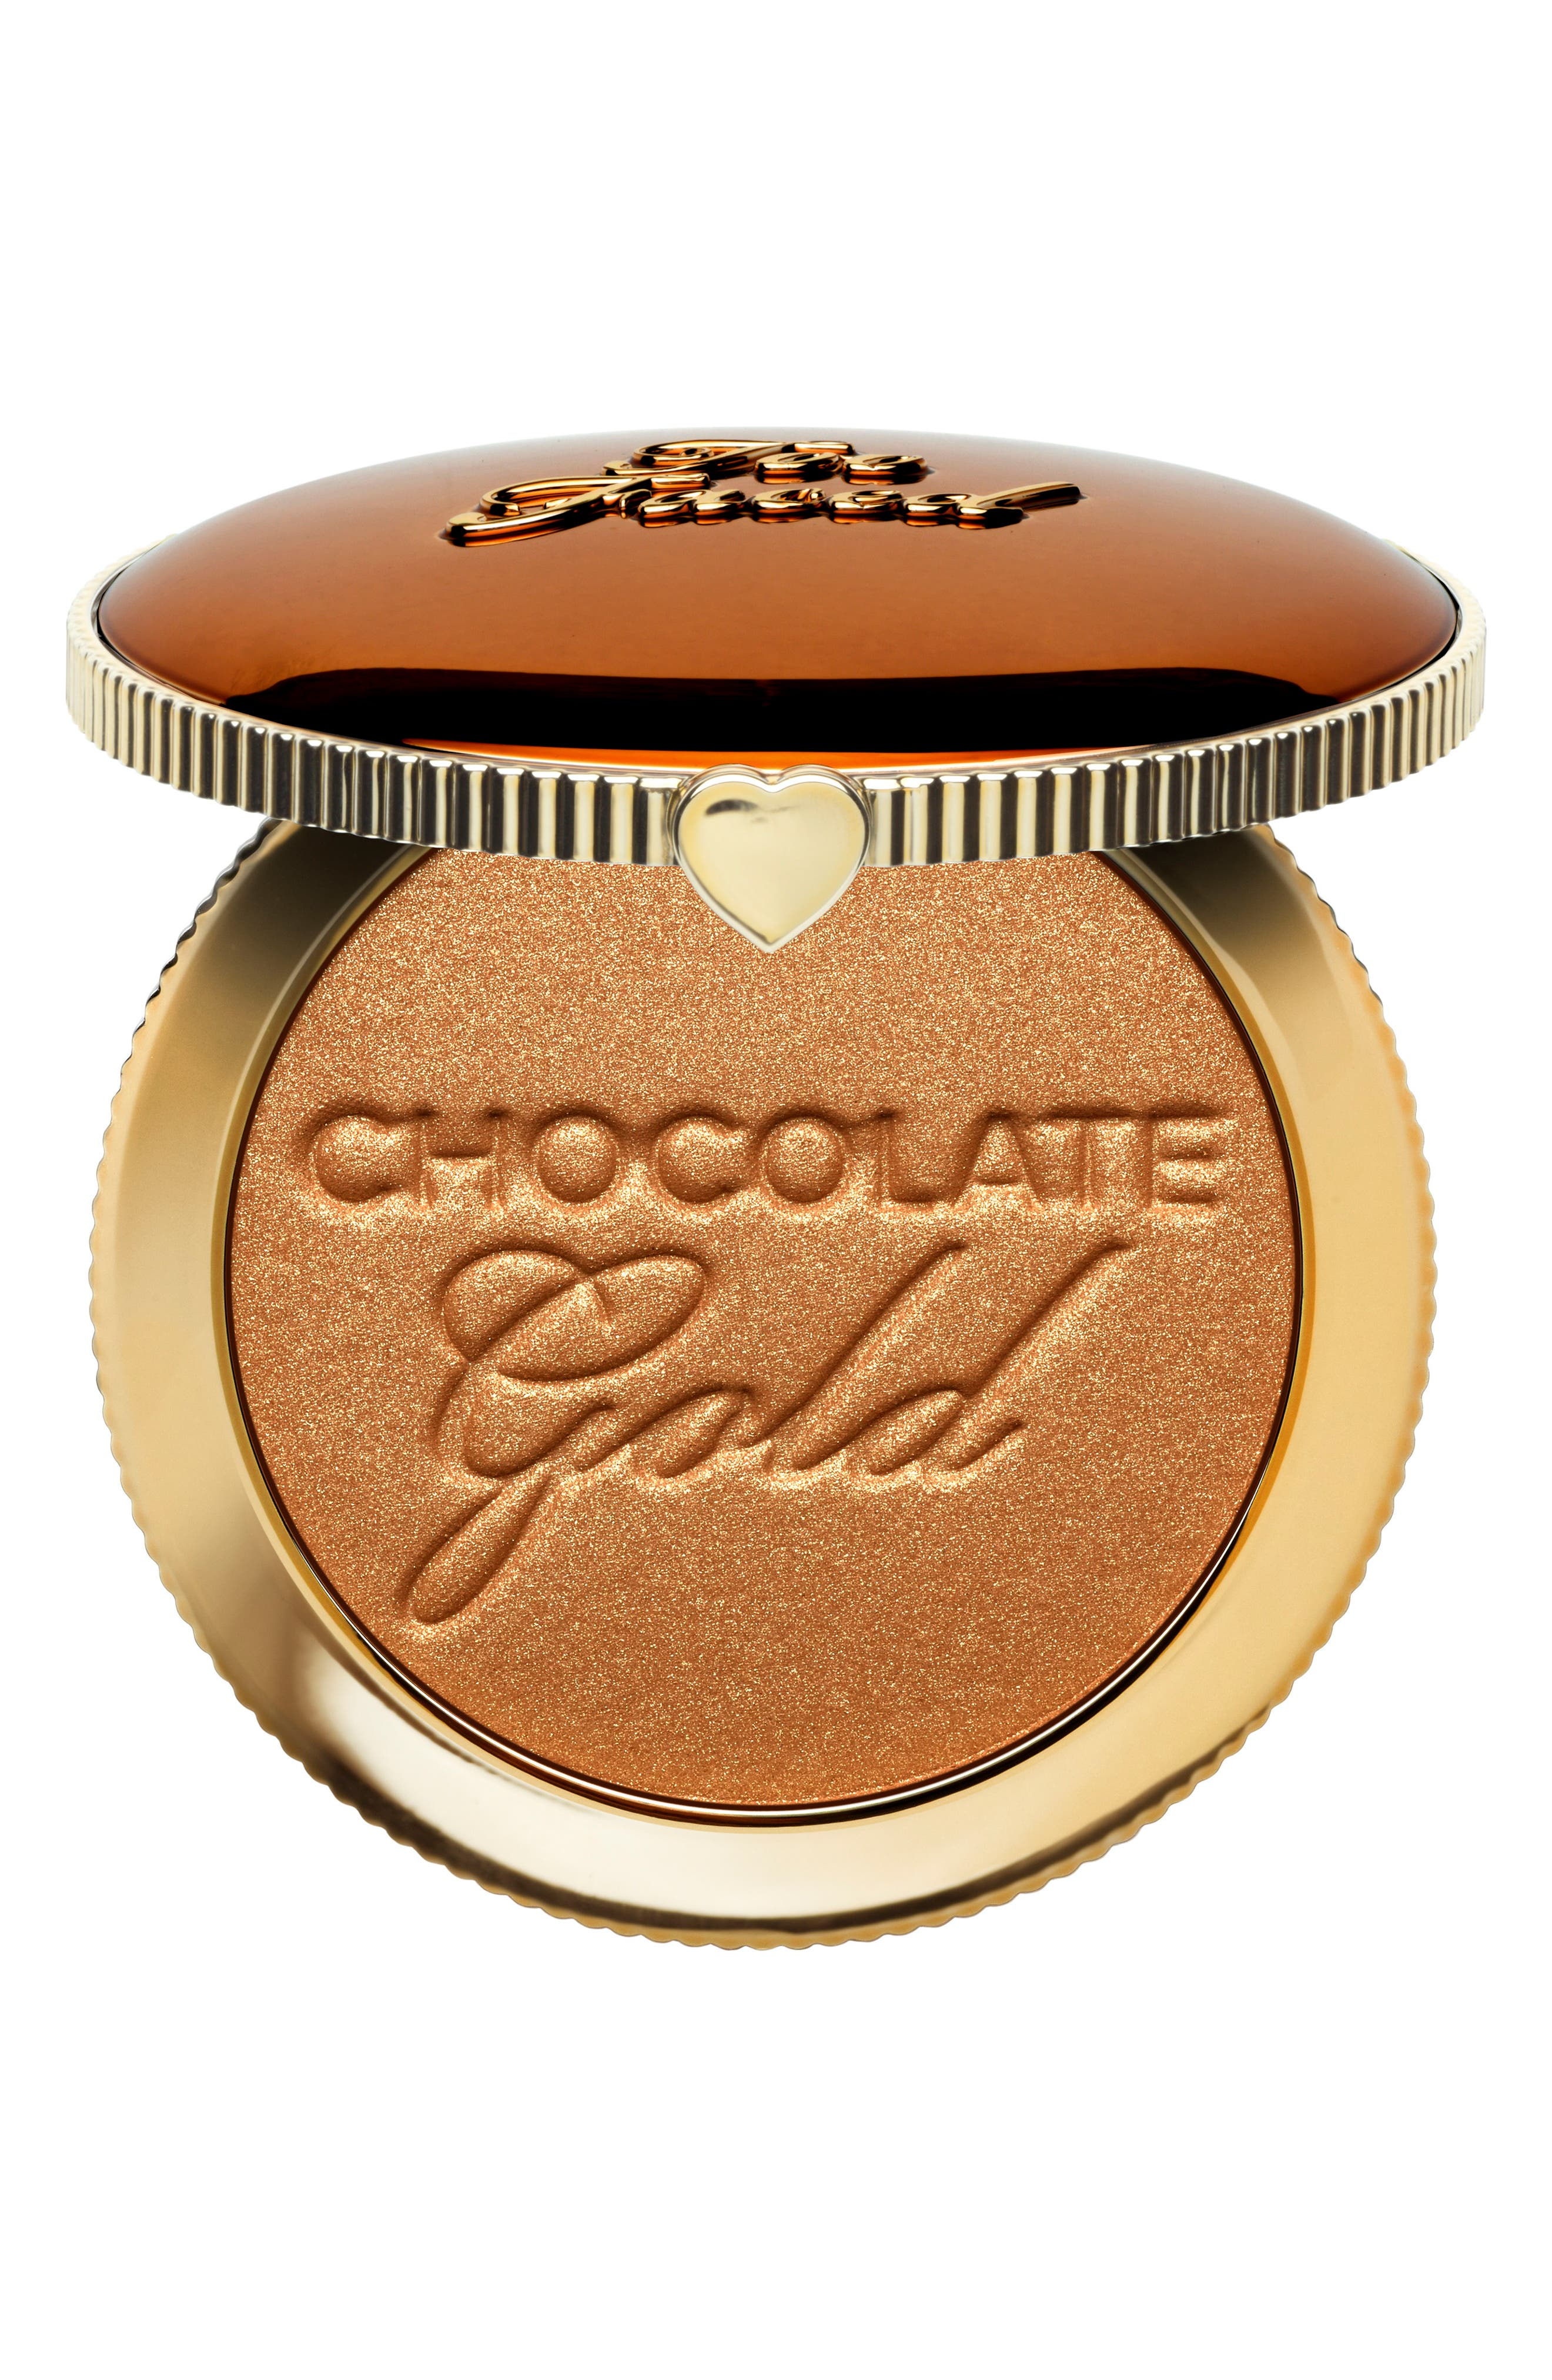 Chocolate Gold Soleil Bronzer,                         Main,                         color, CHOCOLATE GOLD SOLEIL